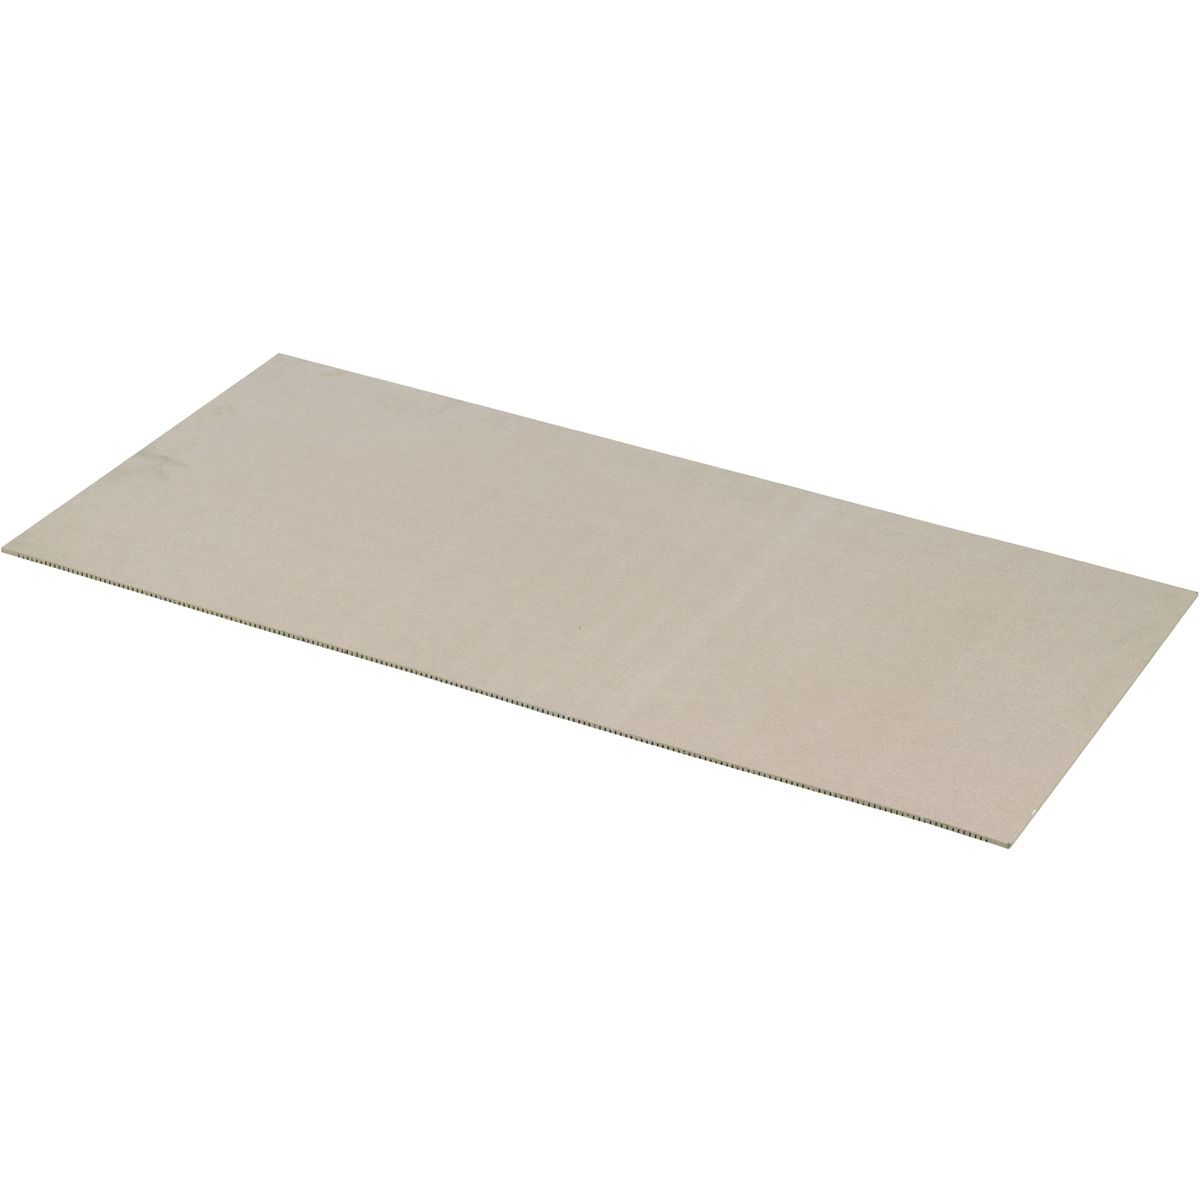 Compare cheap offers & prices of Wickes Flexible MDF Board 6 x 607 x 1220mm manufactured by Wickes